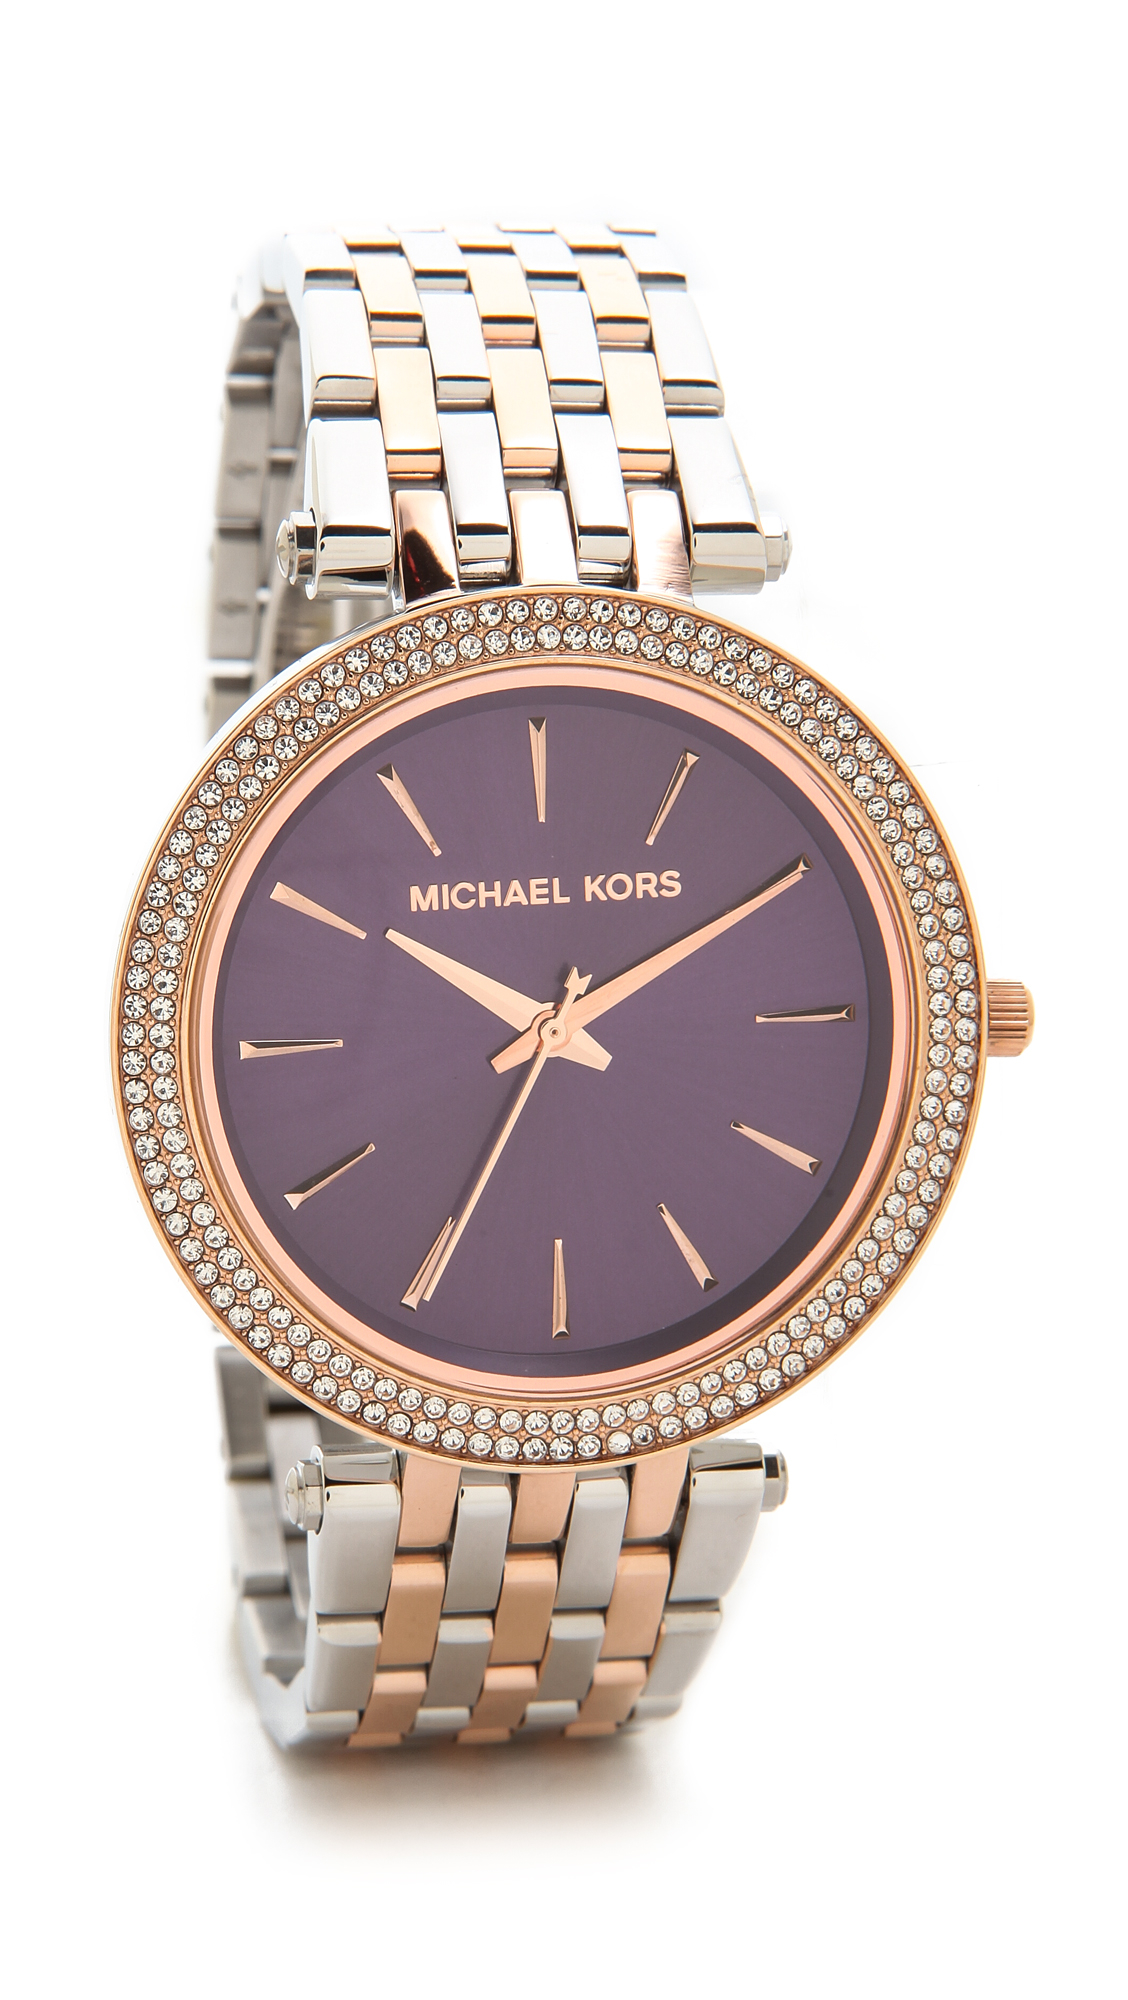 6b136f4959da6 Michael Kors Darci Watch - Silver Rose Amethyst in Purple - Lyst